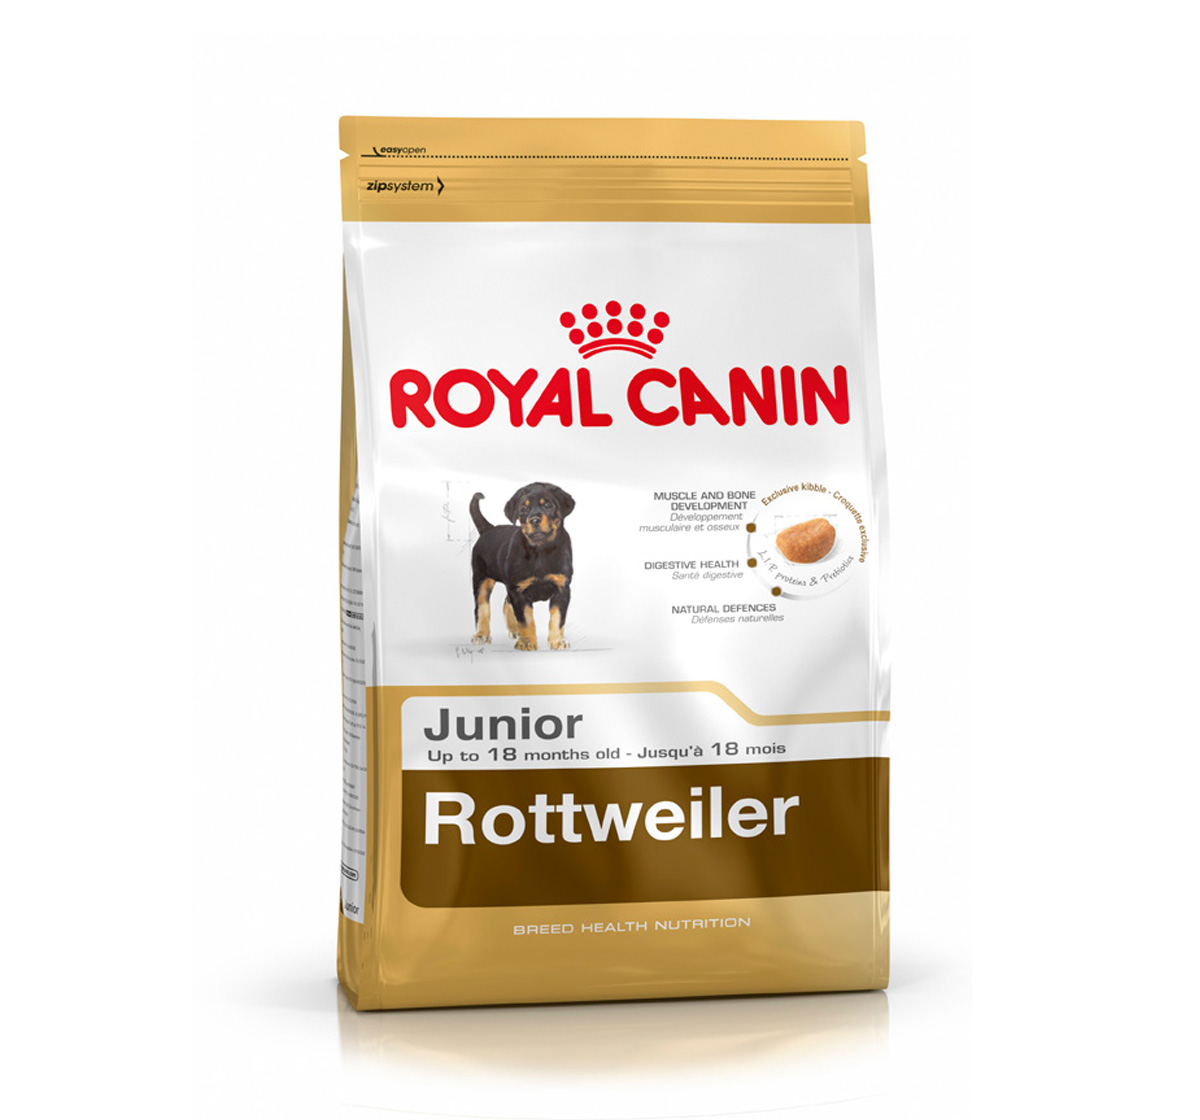 royal canin rottweiler junior 12 kg dogspot online pet supply store. Black Bedroom Furniture Sets. Home Design Ideas